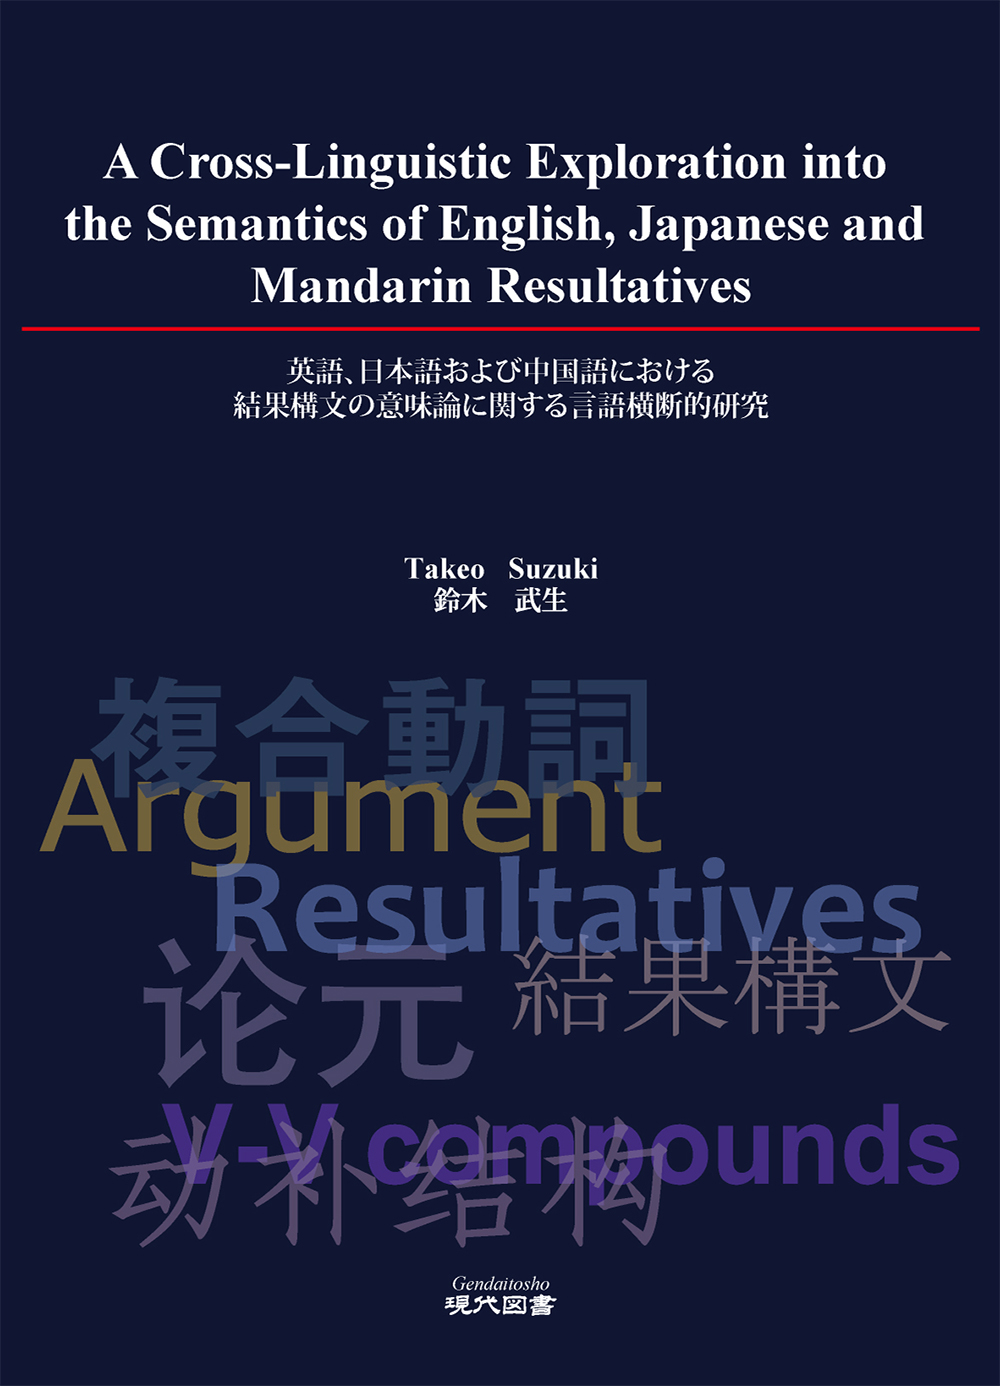 A cross-linguistic exploration into the semantics of English, Japanese and Mandarin resultatives